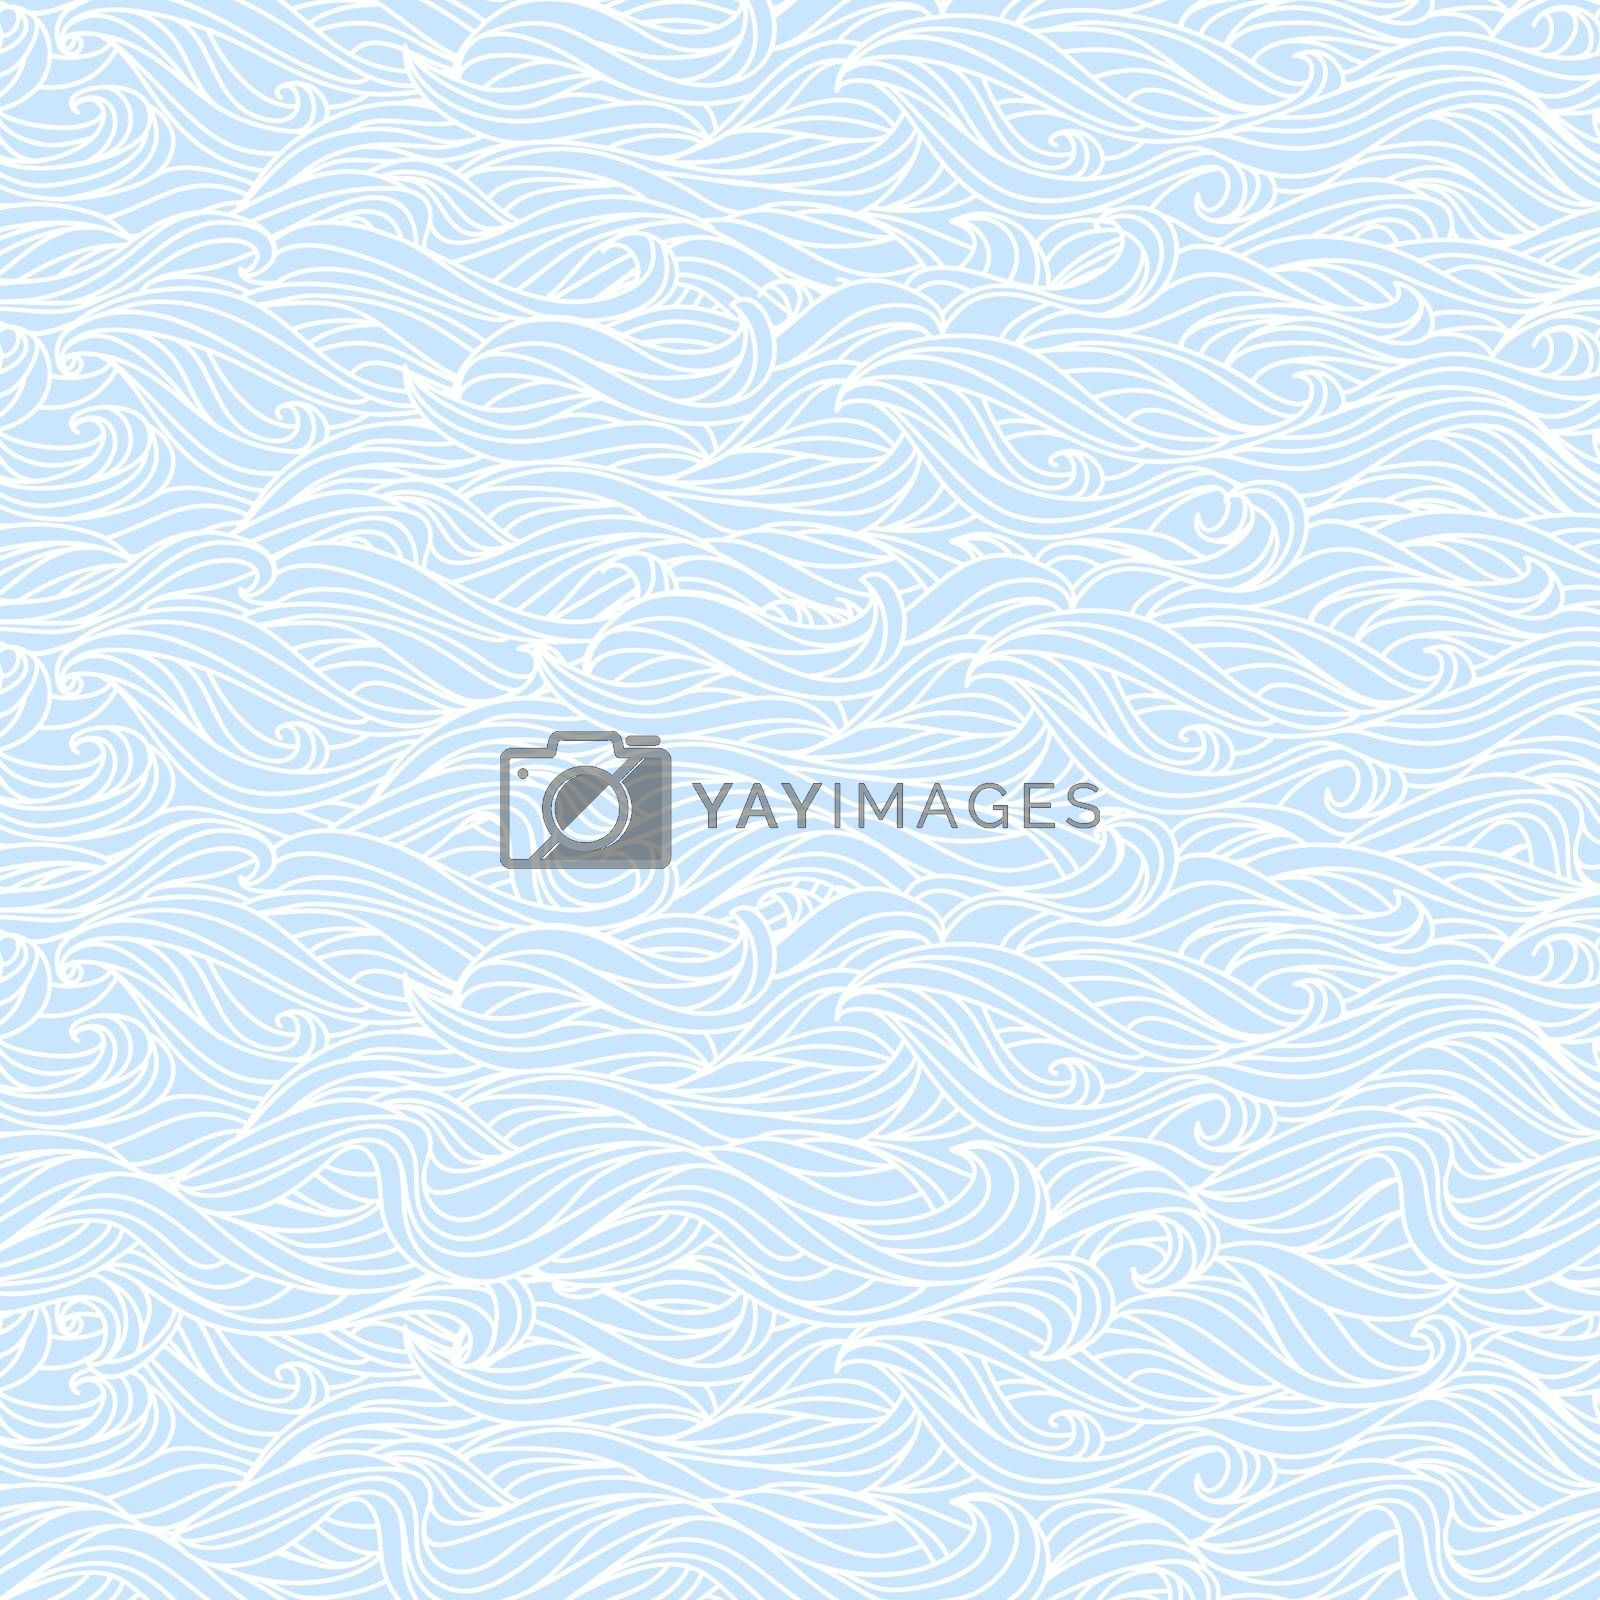 Abstract Wavy Light Blue and White Seamless Texture